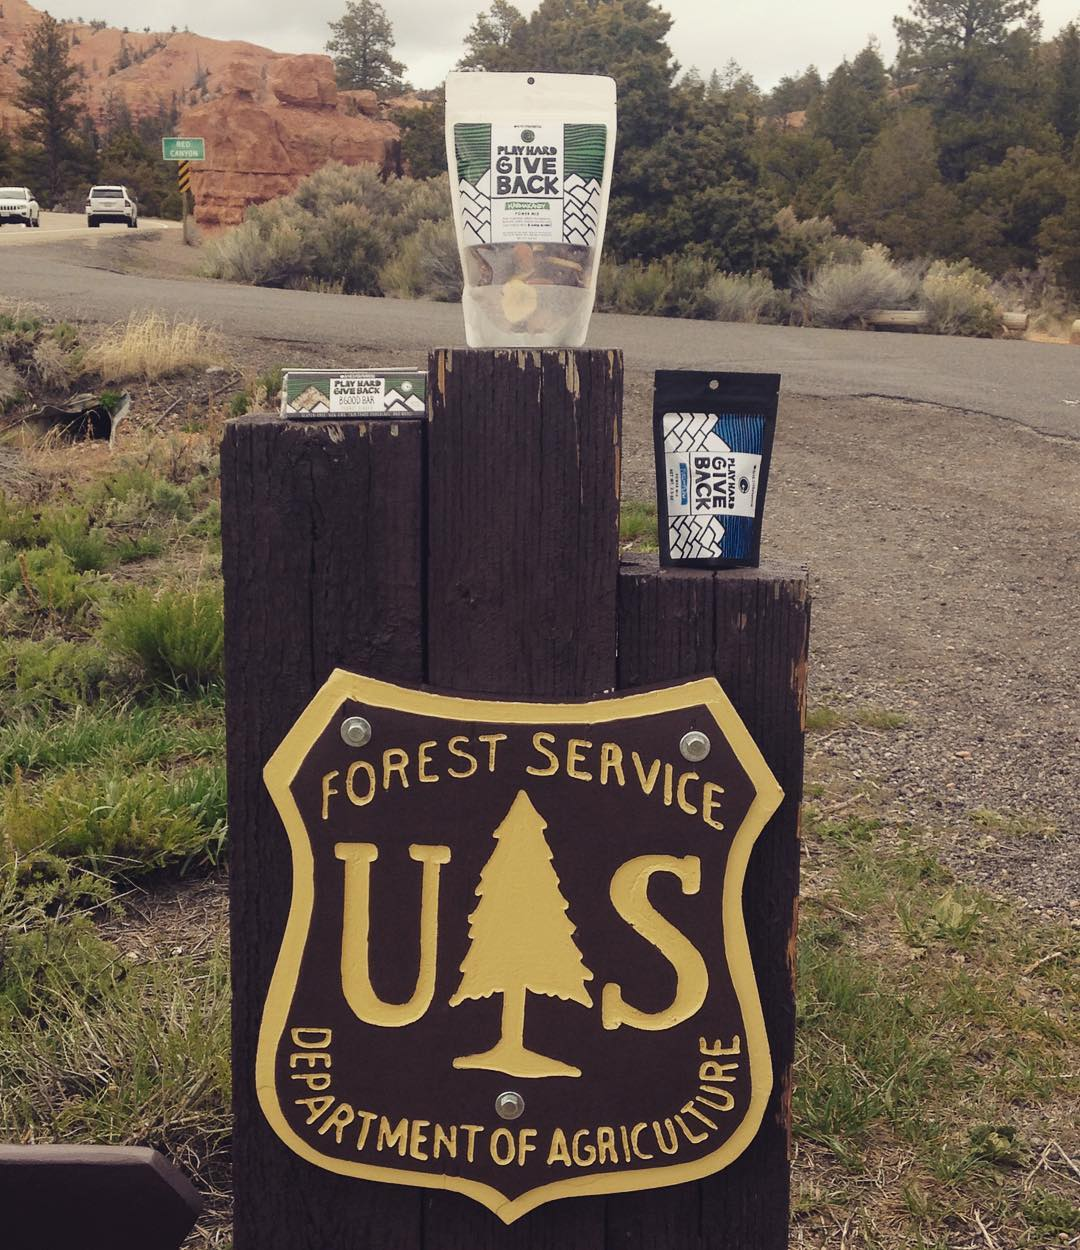 PHGB loves The US Forest Service and Department of Agriculture!! ❤️